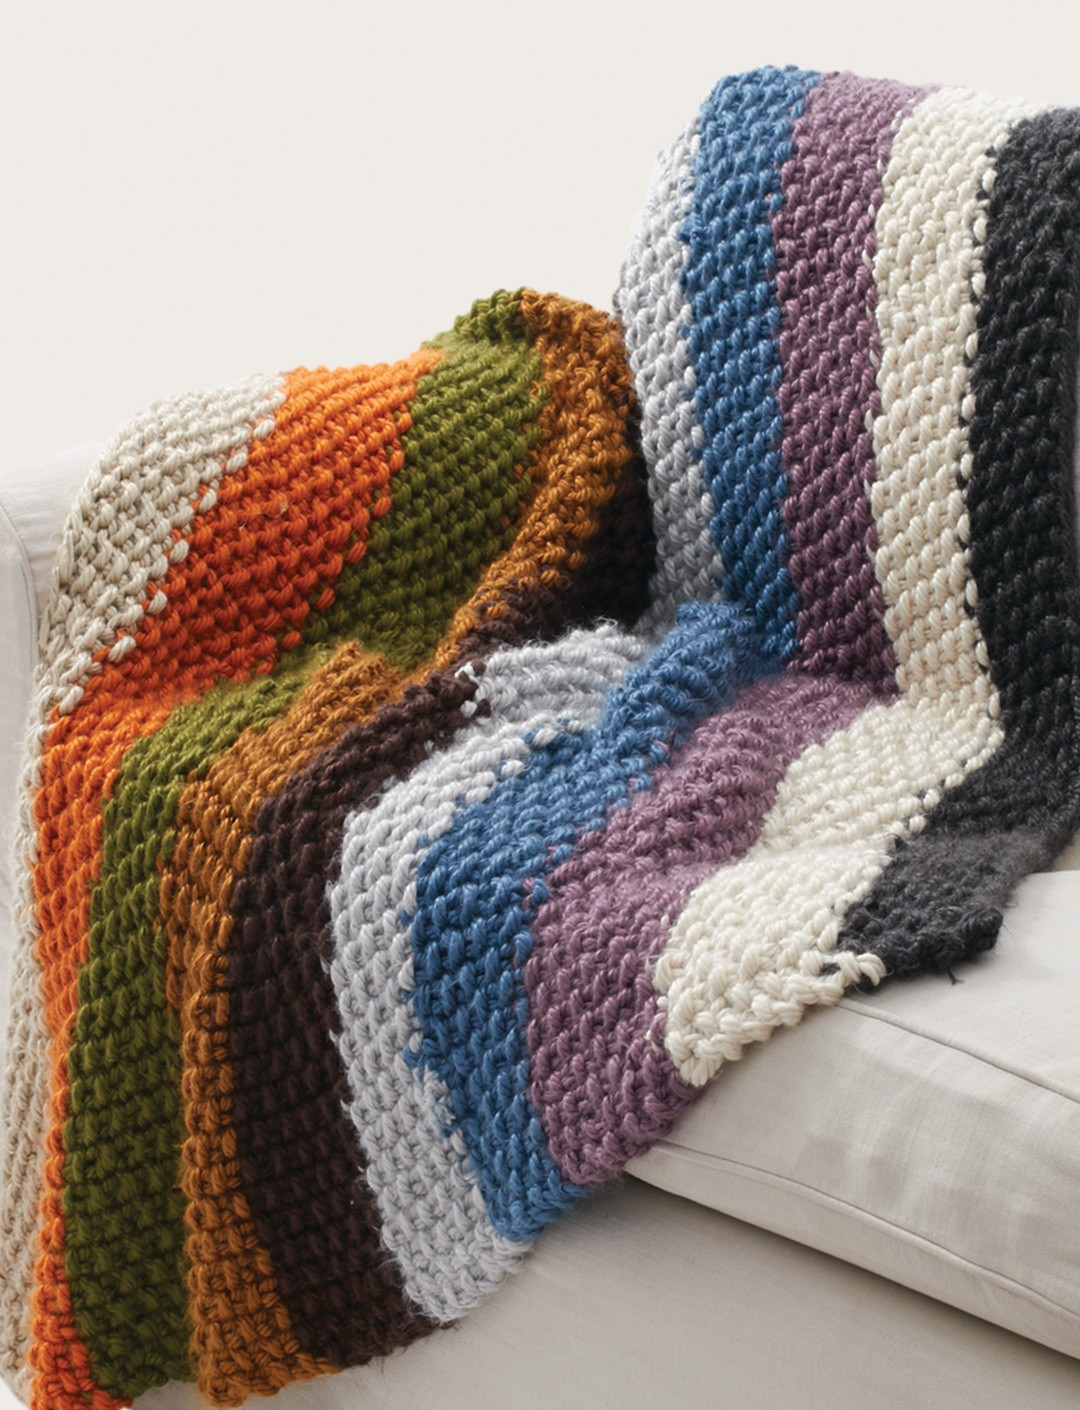 Bernat Baby Blanket Knitting Patterns : Bernat Seed Stitch Blanket, Knit Pattern Yarnspirations